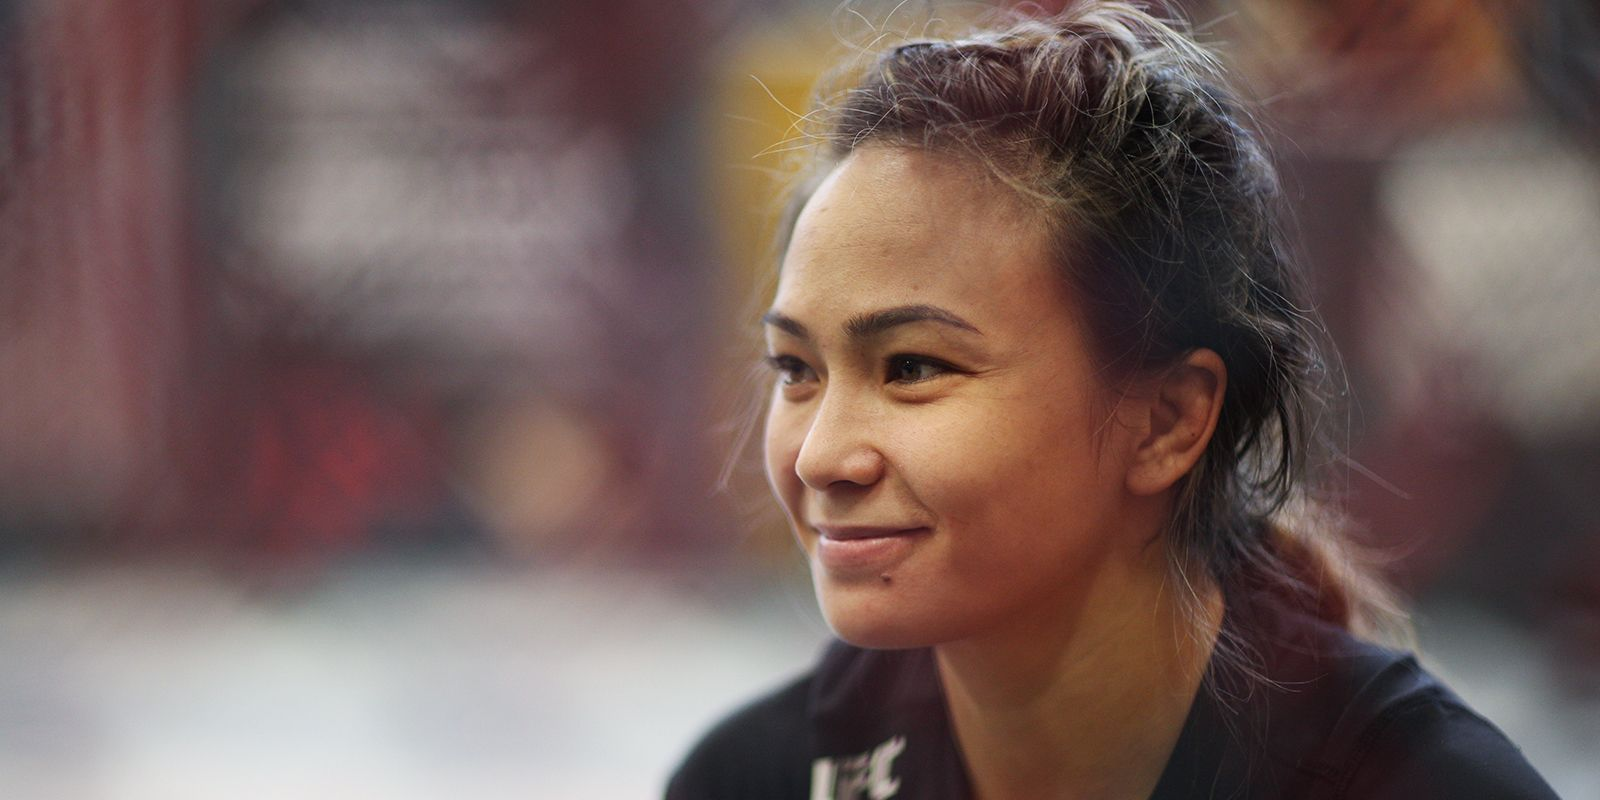 Michelle Waterson Is Fighting To Support Her Daughter Michelle waterson and husband joshua gomez impressed at the amalie arena. michelle waterson is fighting to